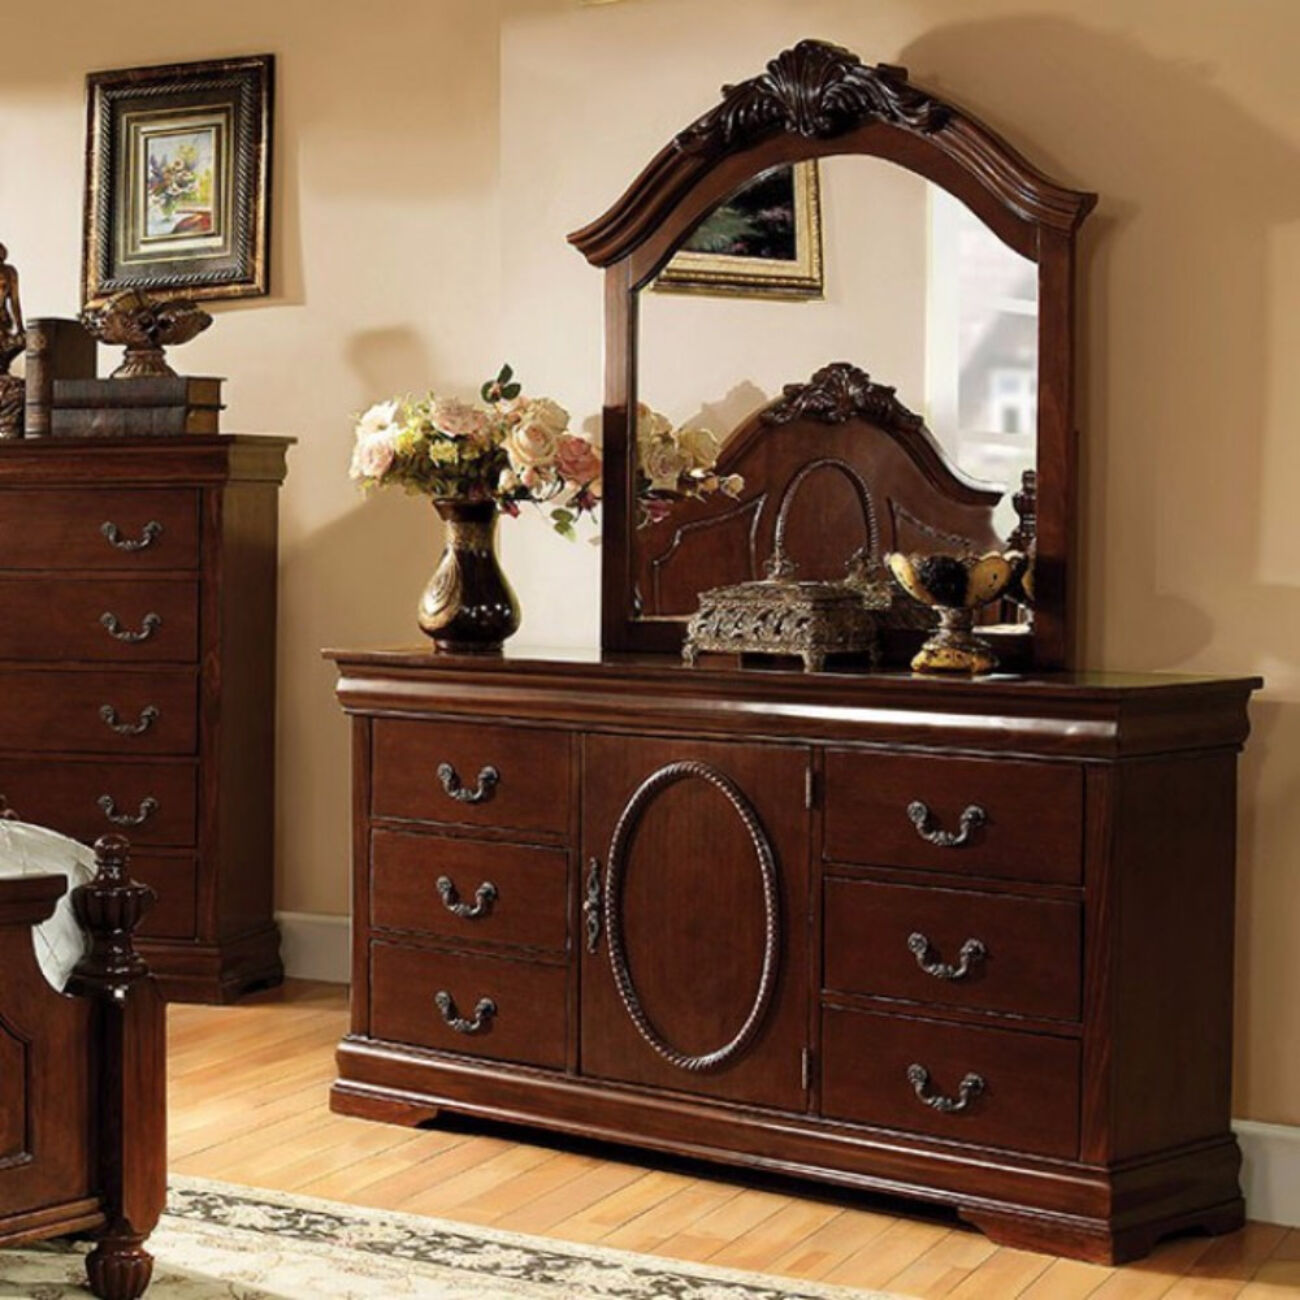 Phenomenal Wooden Dresser In Traditional Style, Brown Cherry